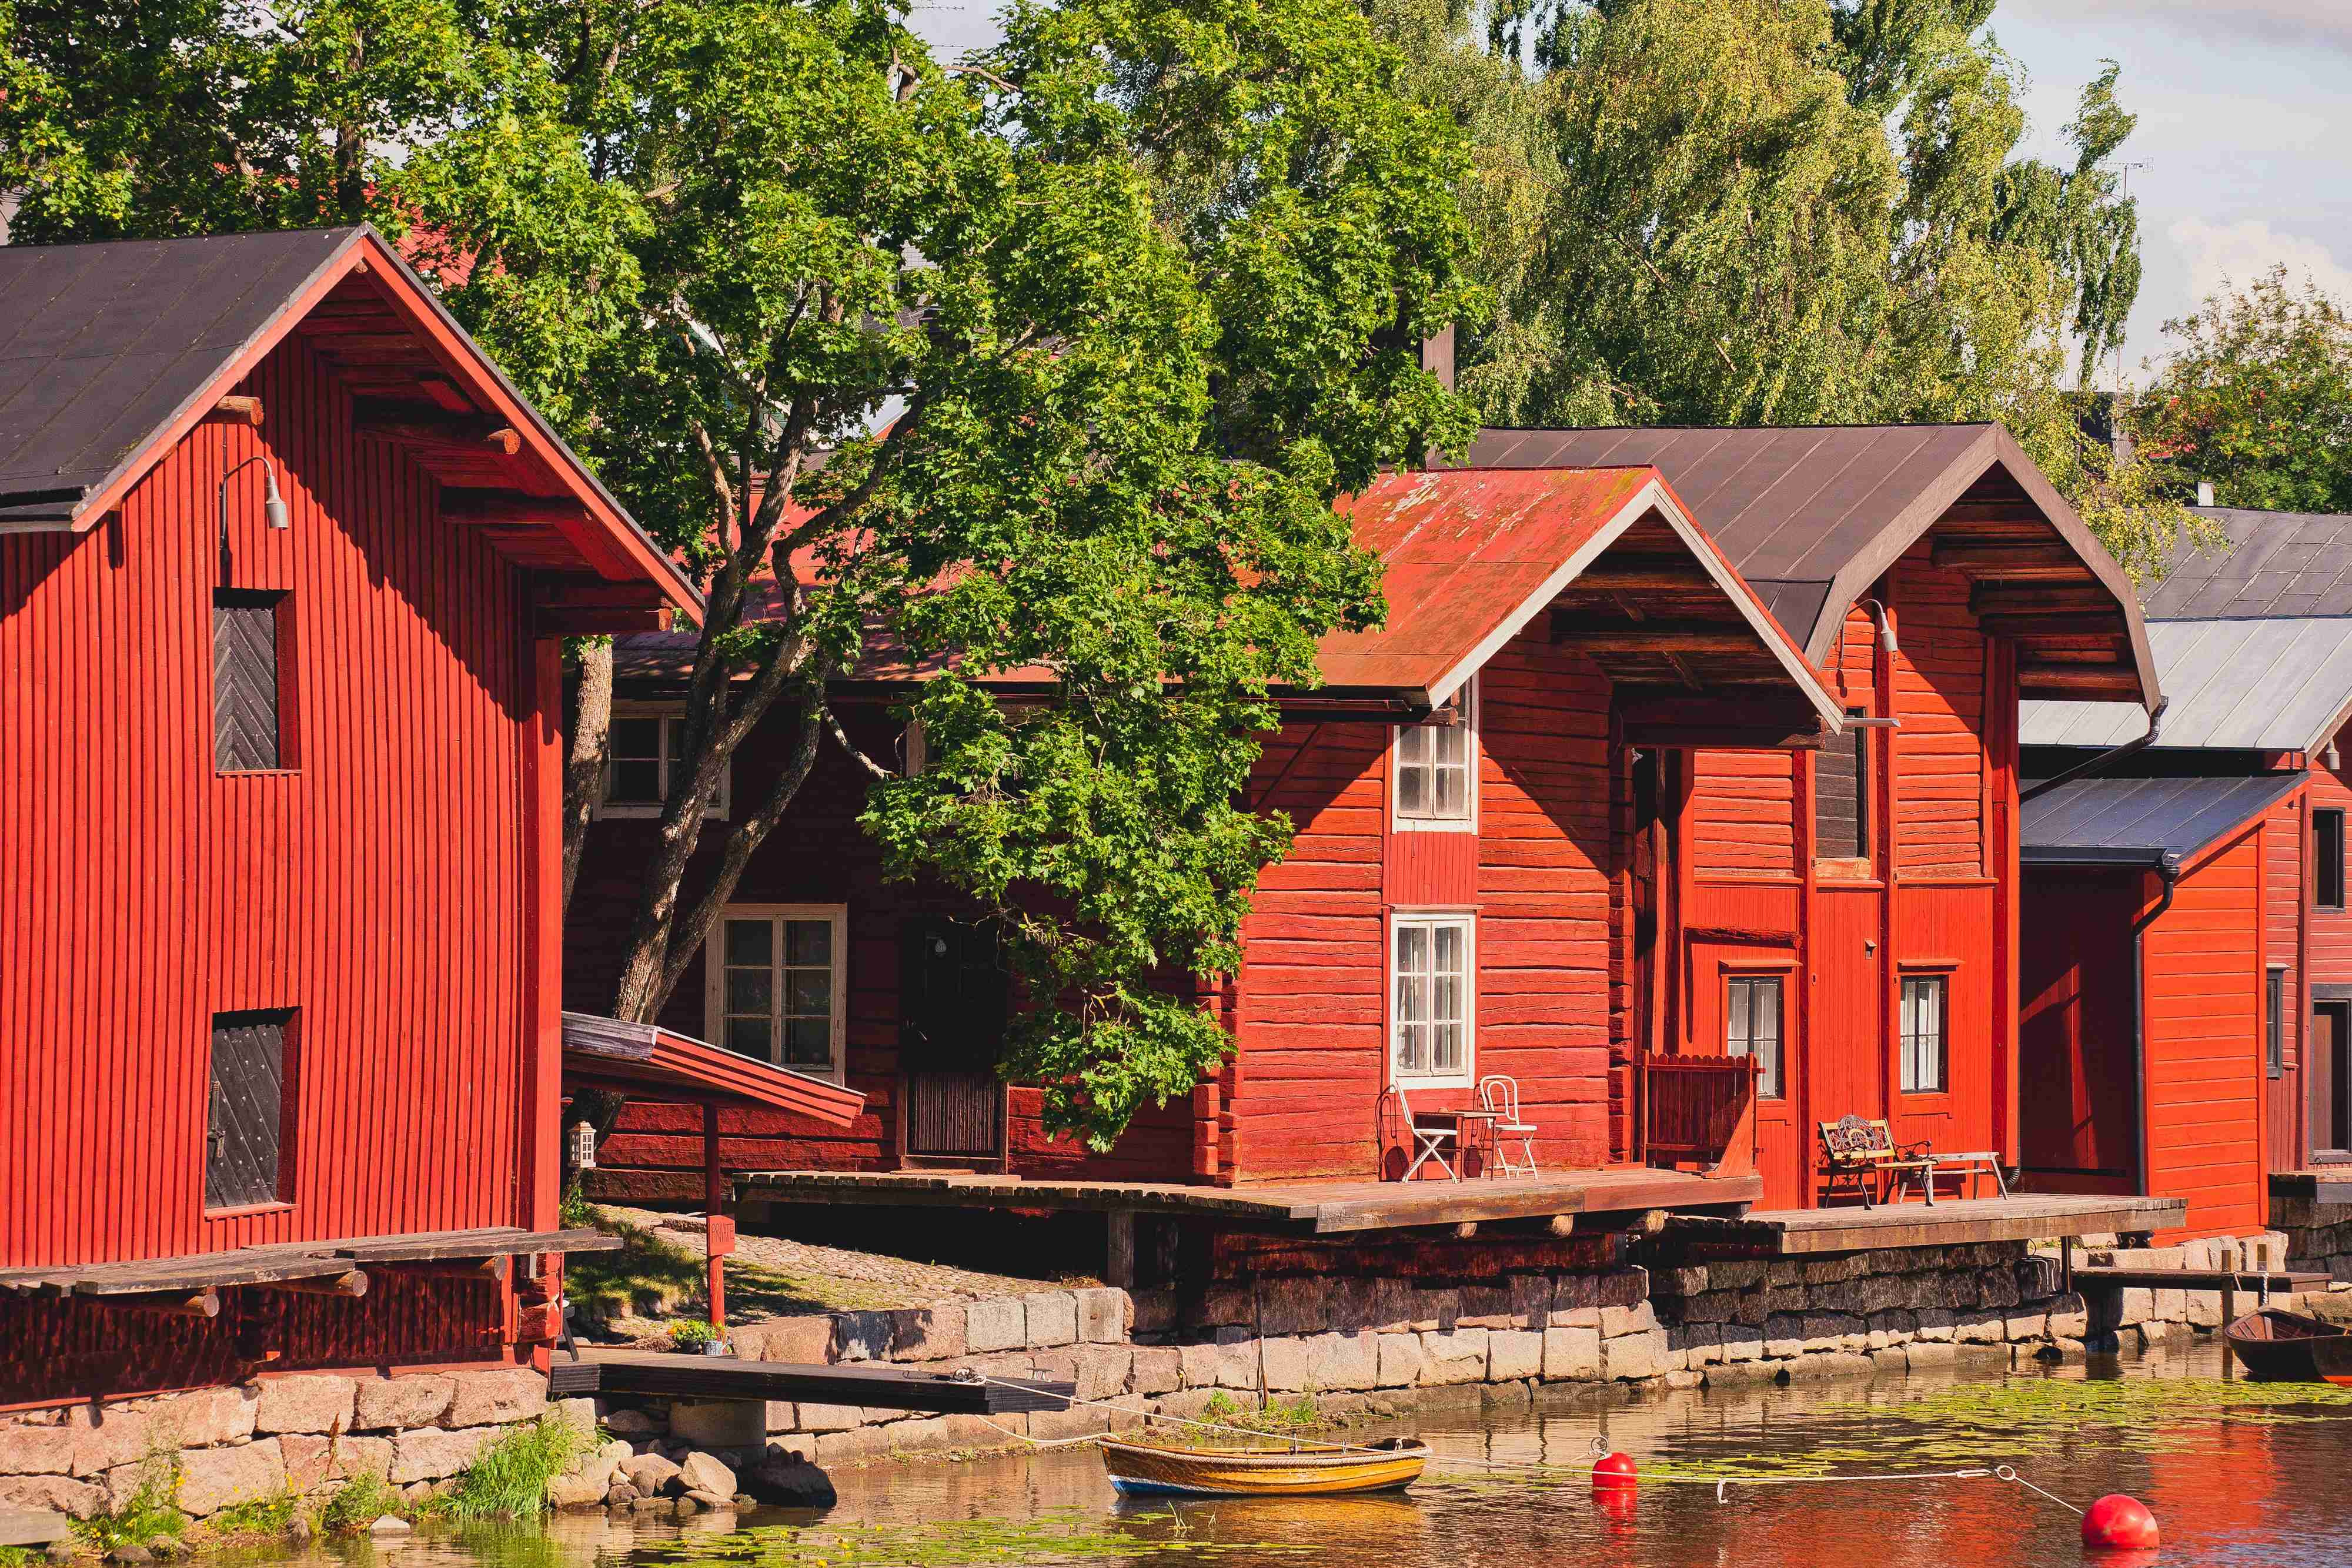 The signature red buildings in Porvoo were originally built as warehouses in the 1800